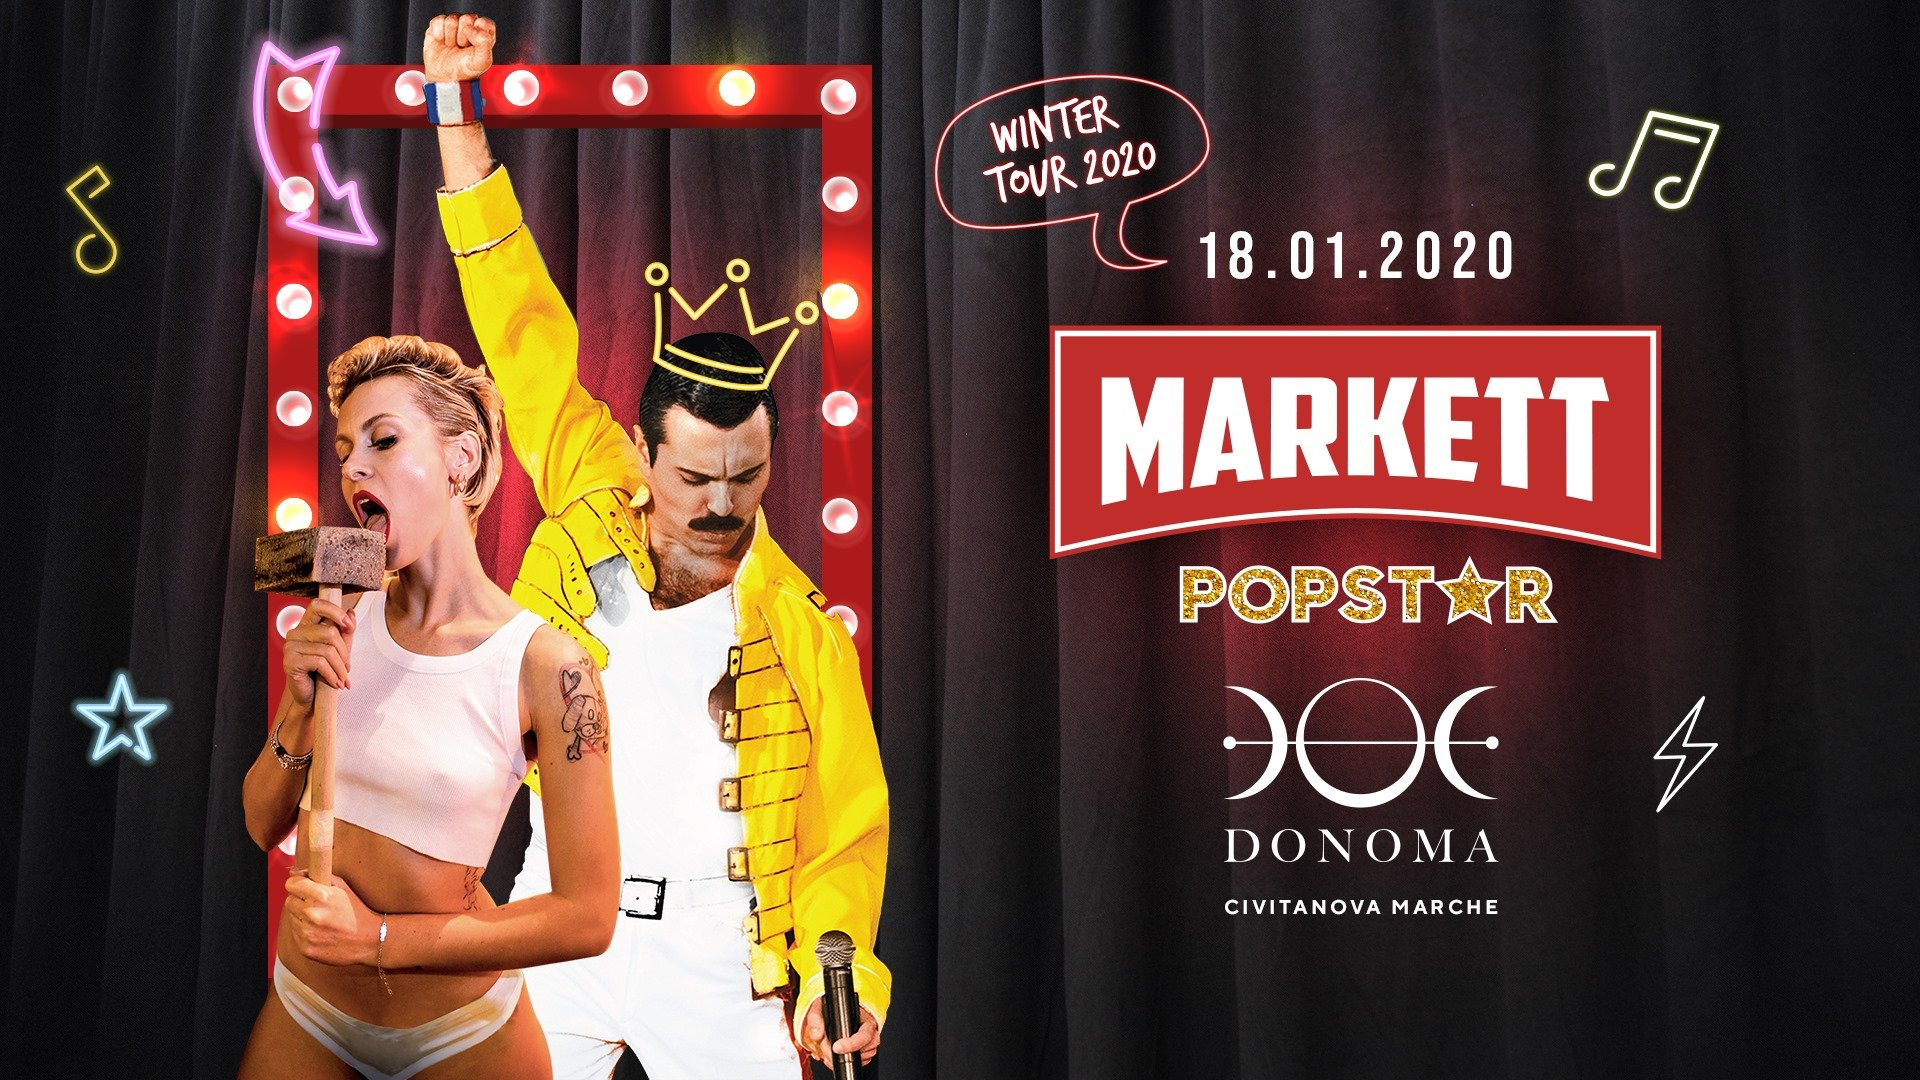 Markett Popstar Donoma Club